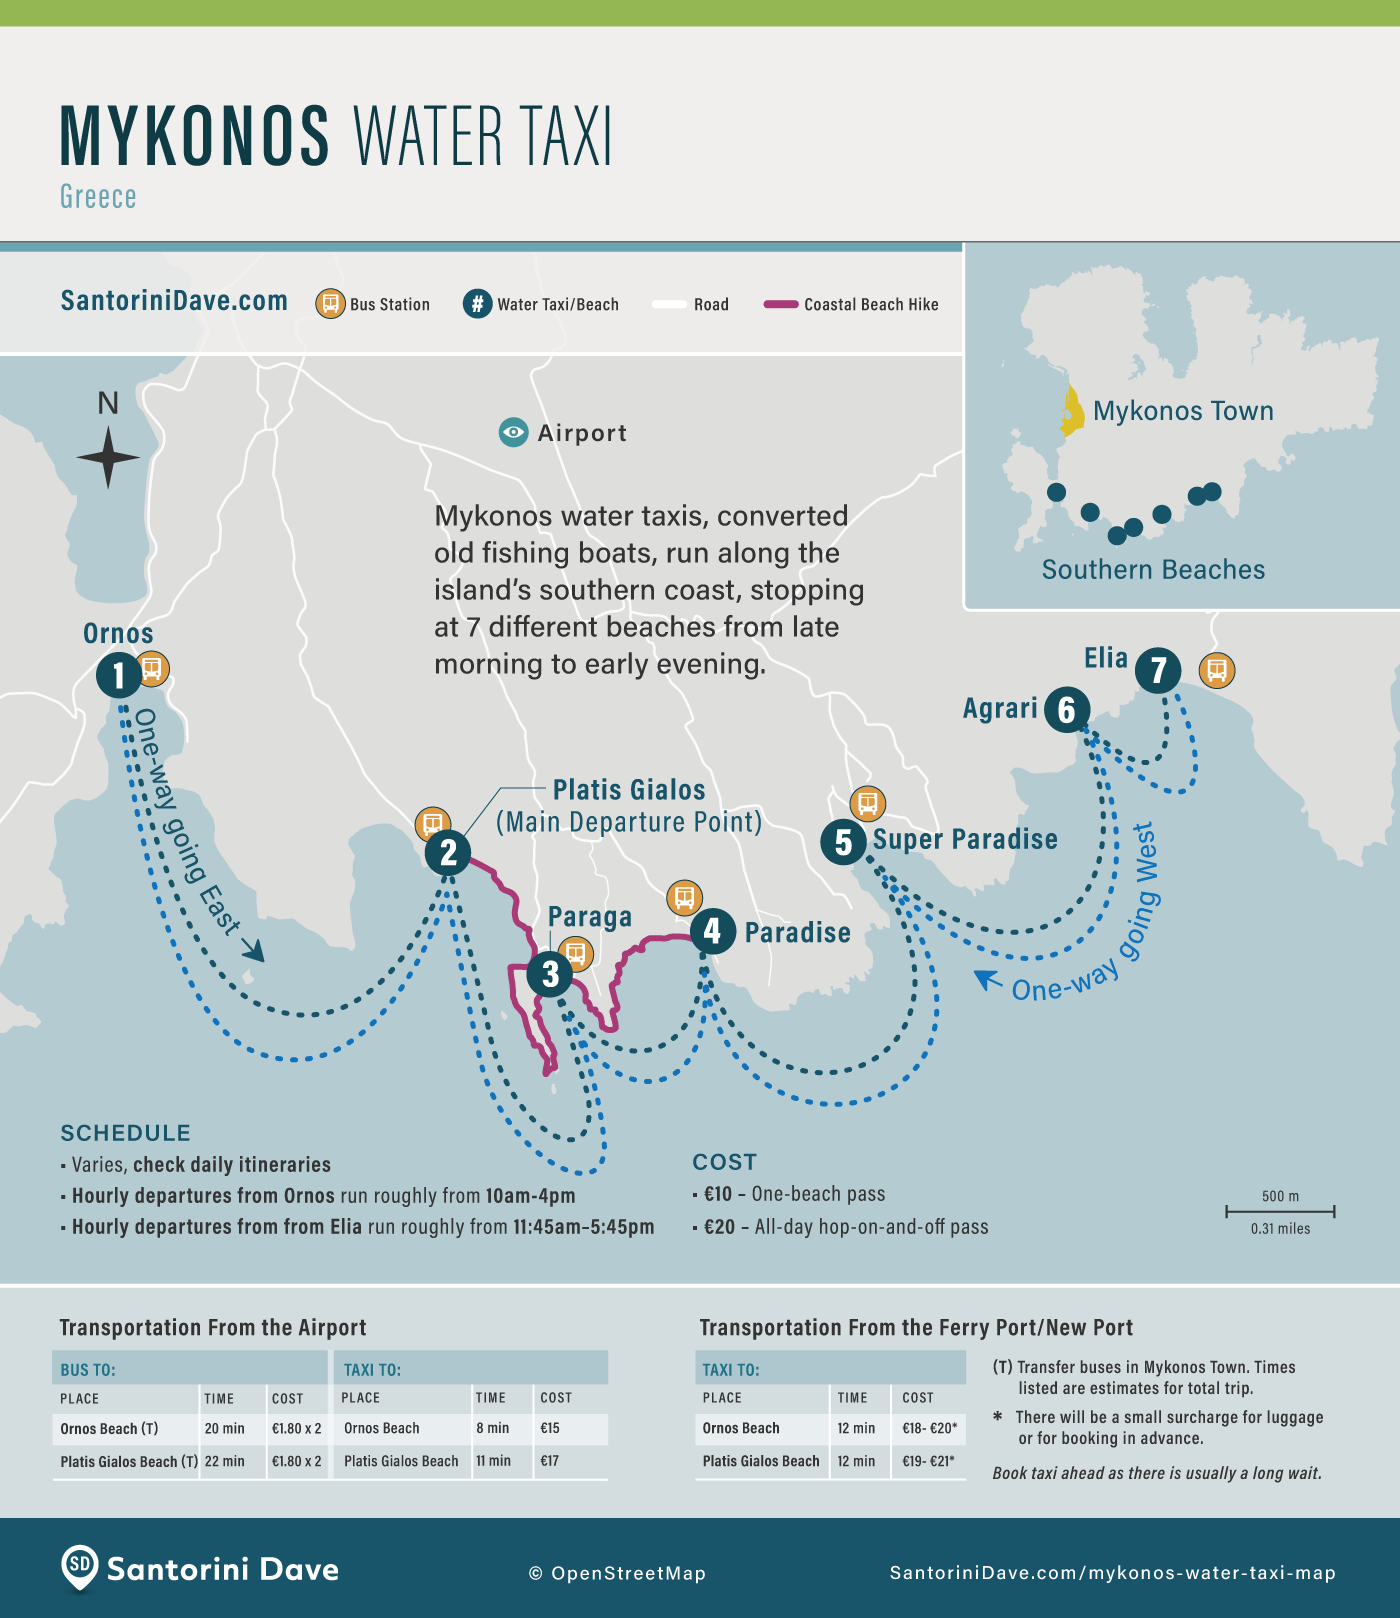 Map of the Mykonos water taxi routes in Greece